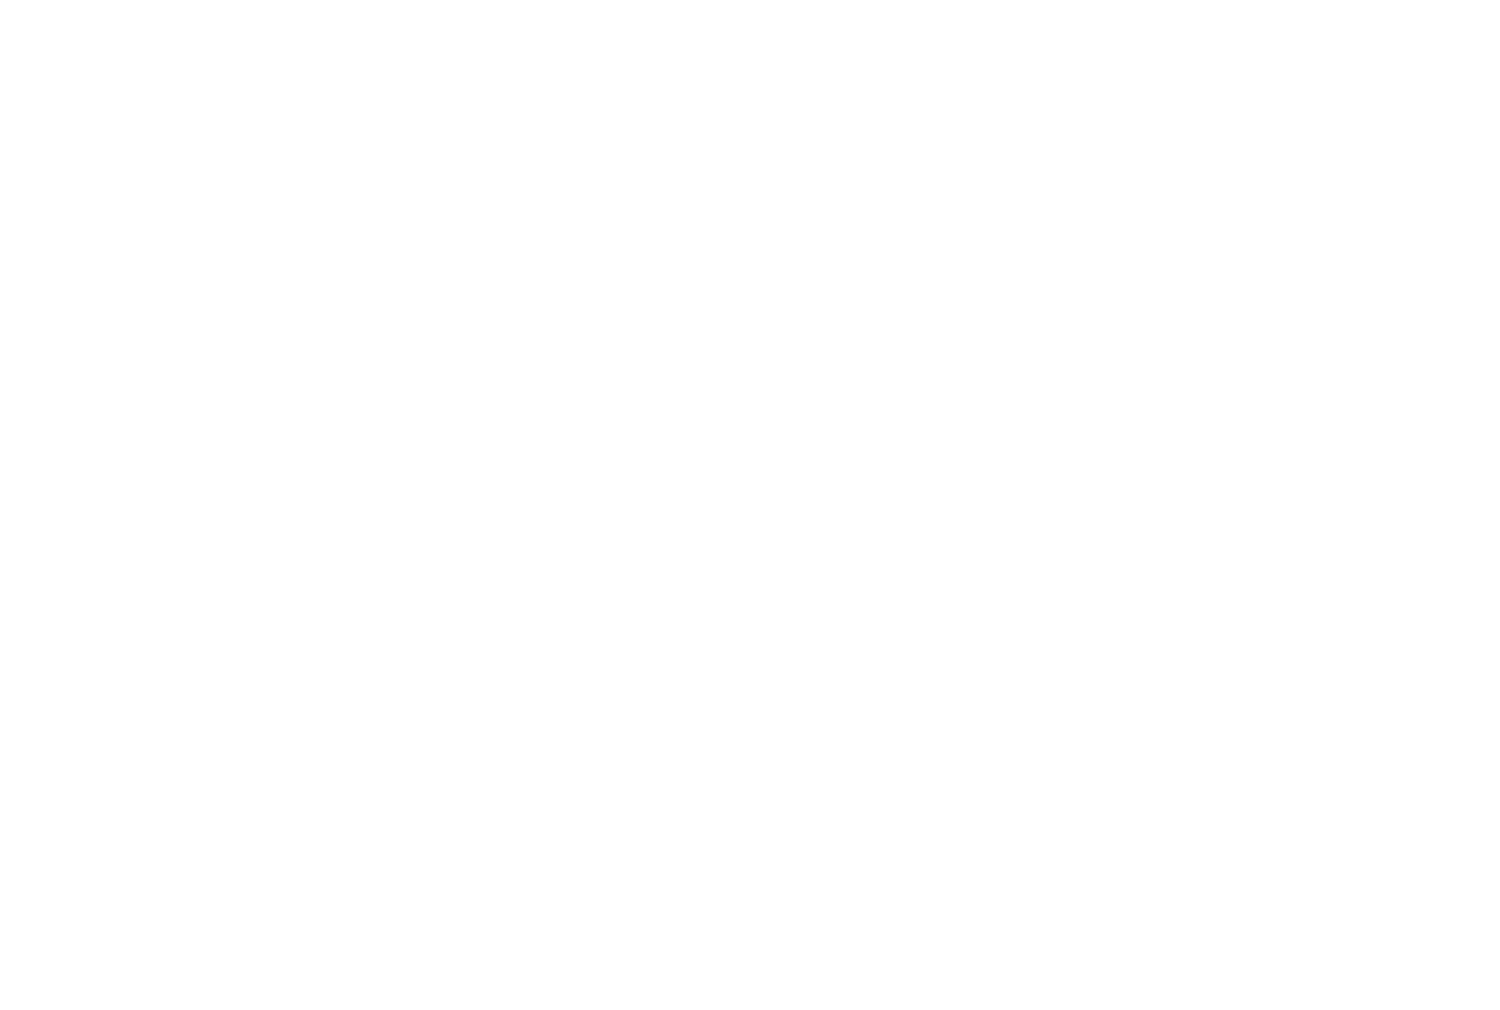 The Christian Household Embassy Movement